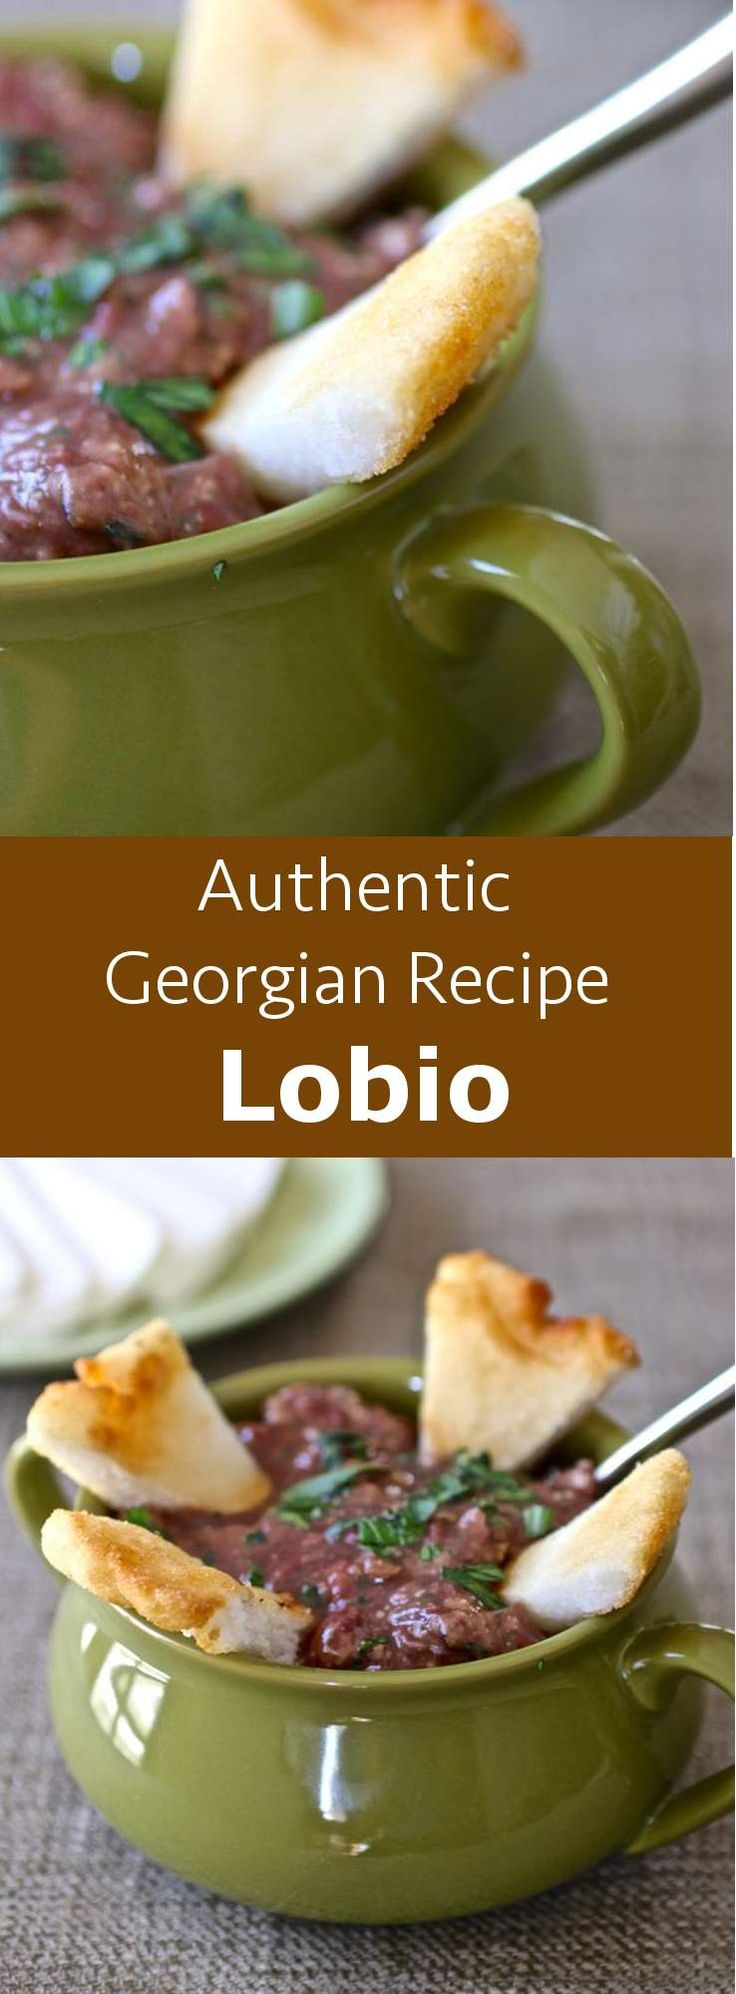 Lobio is Georgia's national dish. Lobio nigvzit, its most common version, is a thick soup with red beans, onions, walnuts and blue fenugreek.